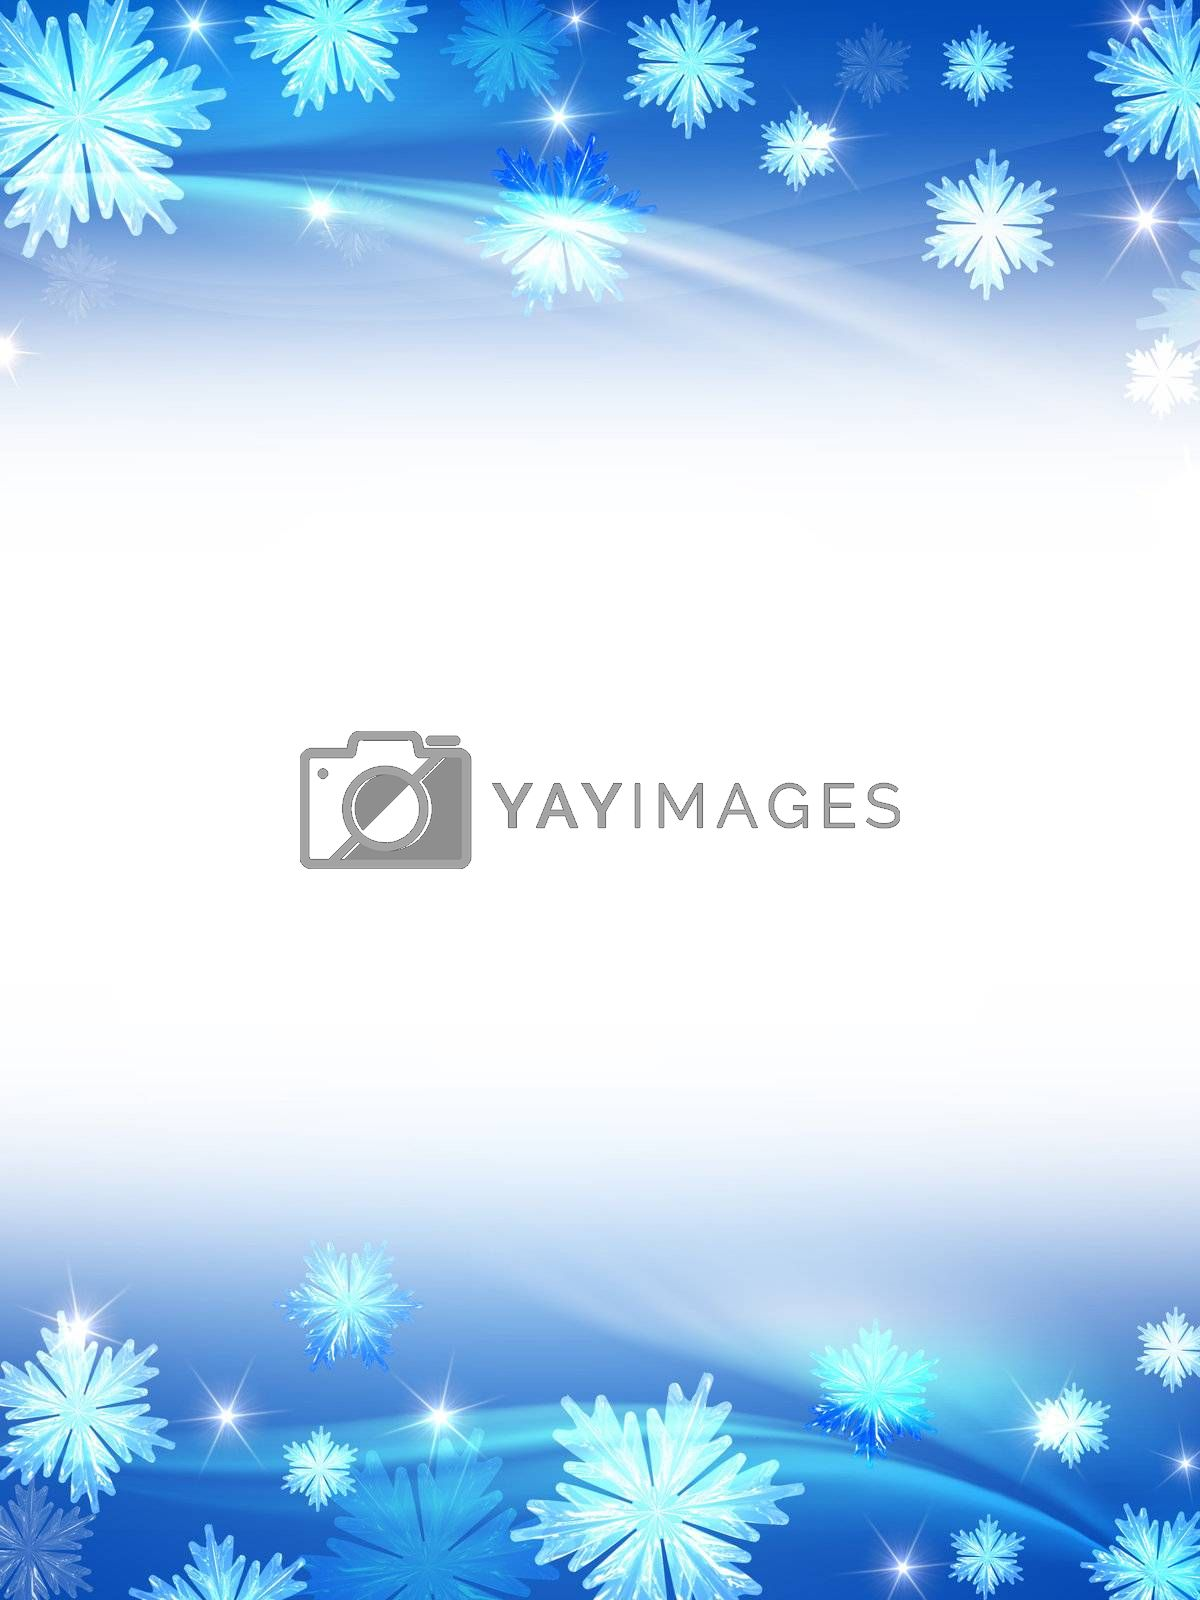 white blue christmas background royalty free stock image stock photos royalty free images vectors footage yayimages https www yayimages com 1360184 white blue christmas background html